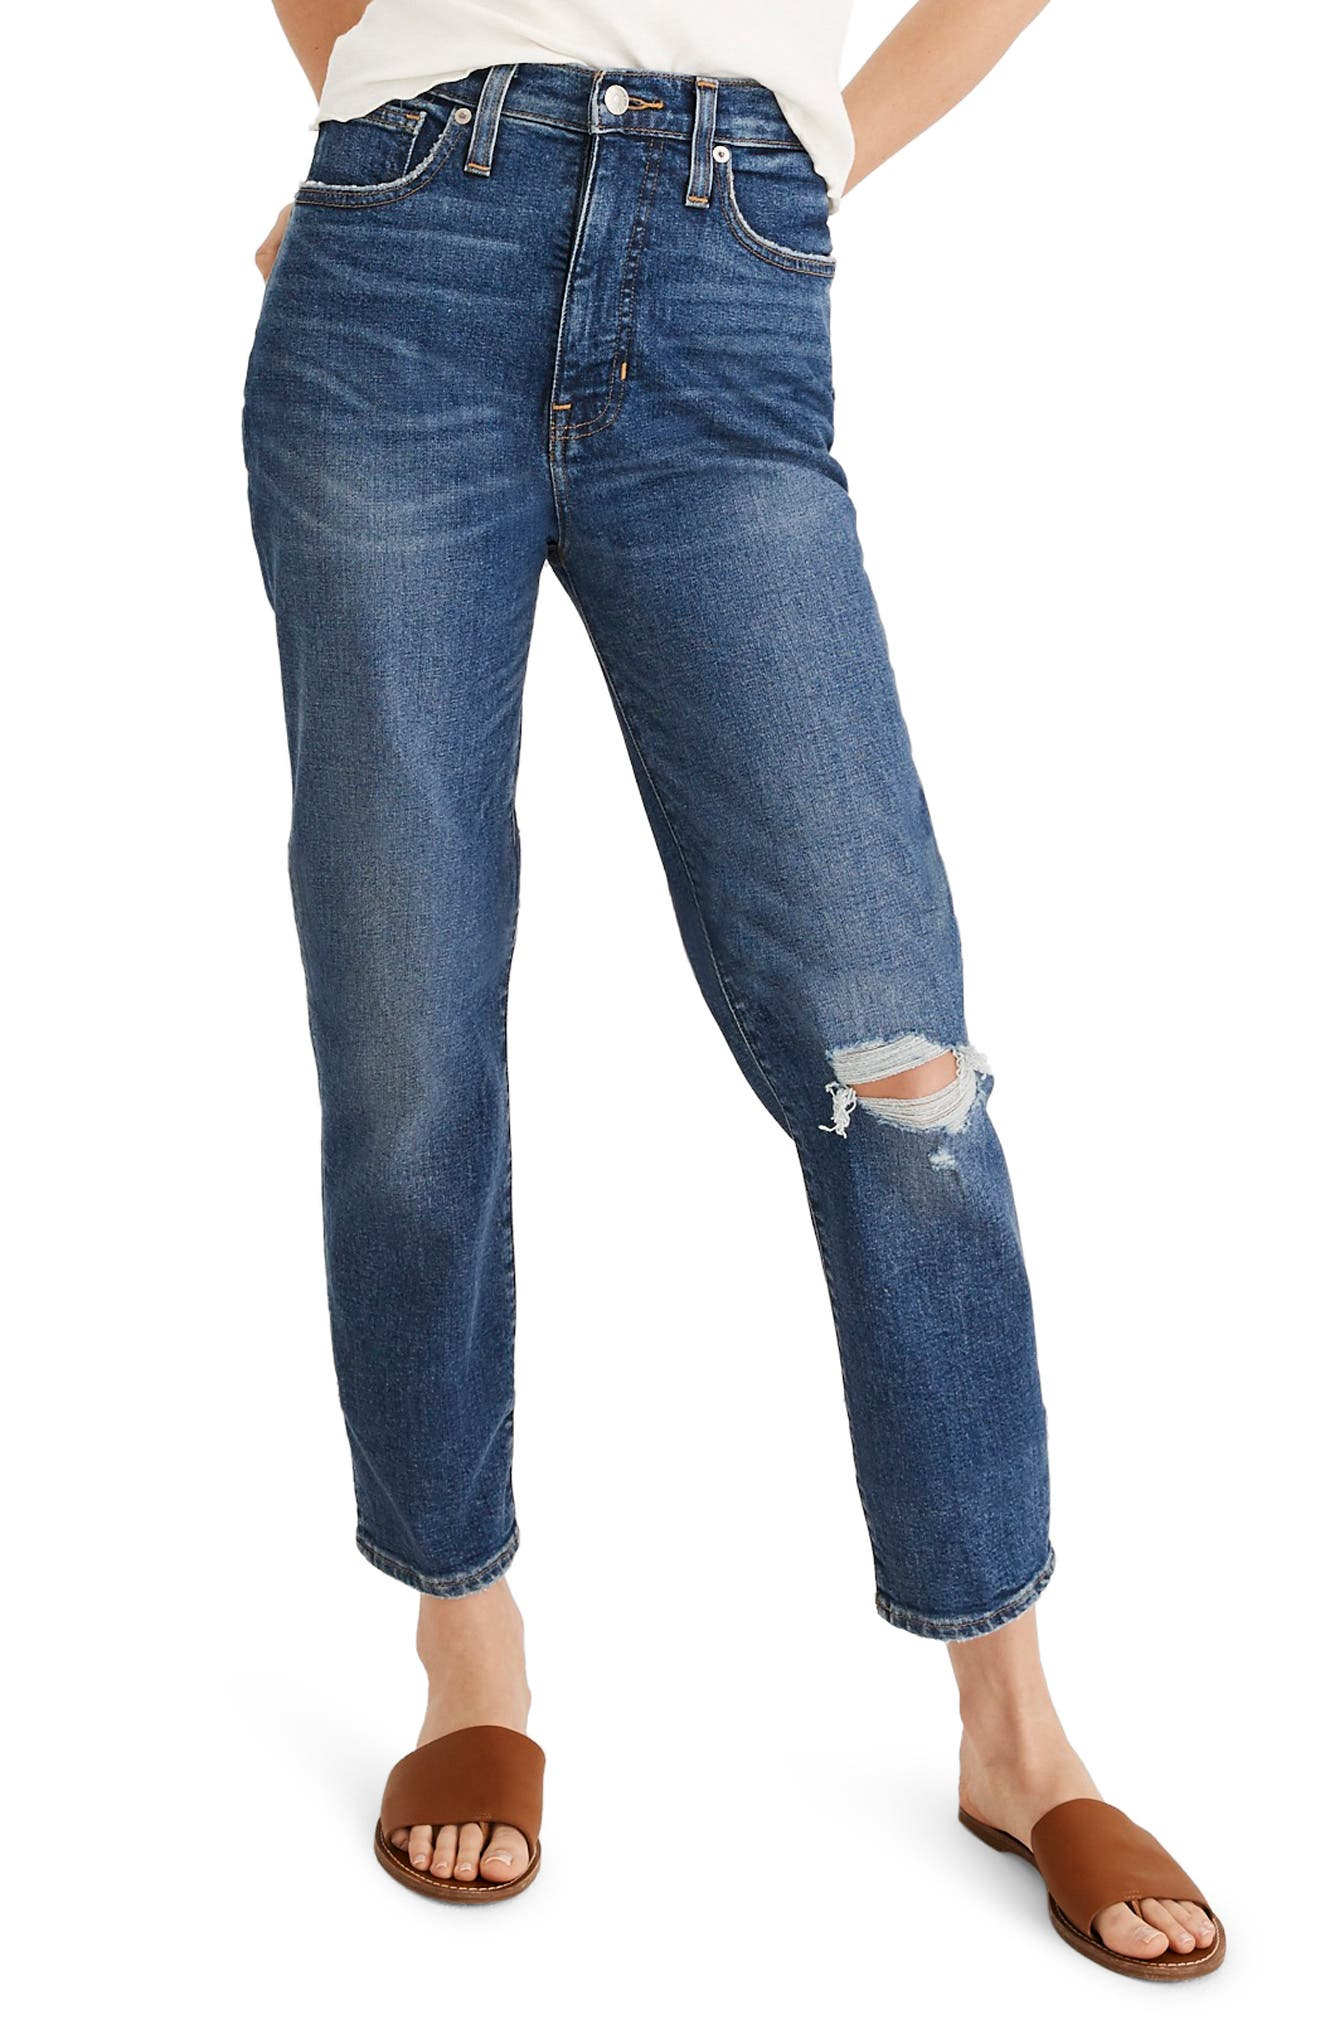 Madewell The Momjean Ripped High Waist Stretch Jeans (Ellwyn)